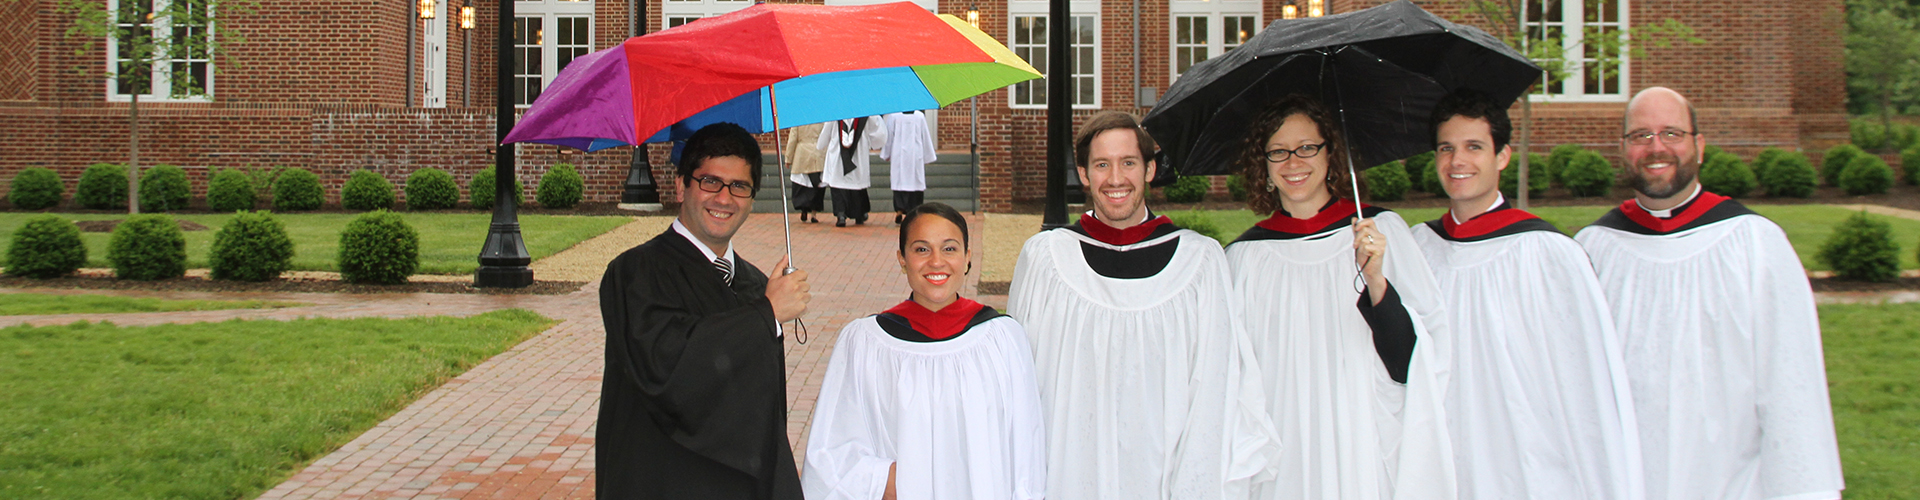 Staff standing outside under umbrellas